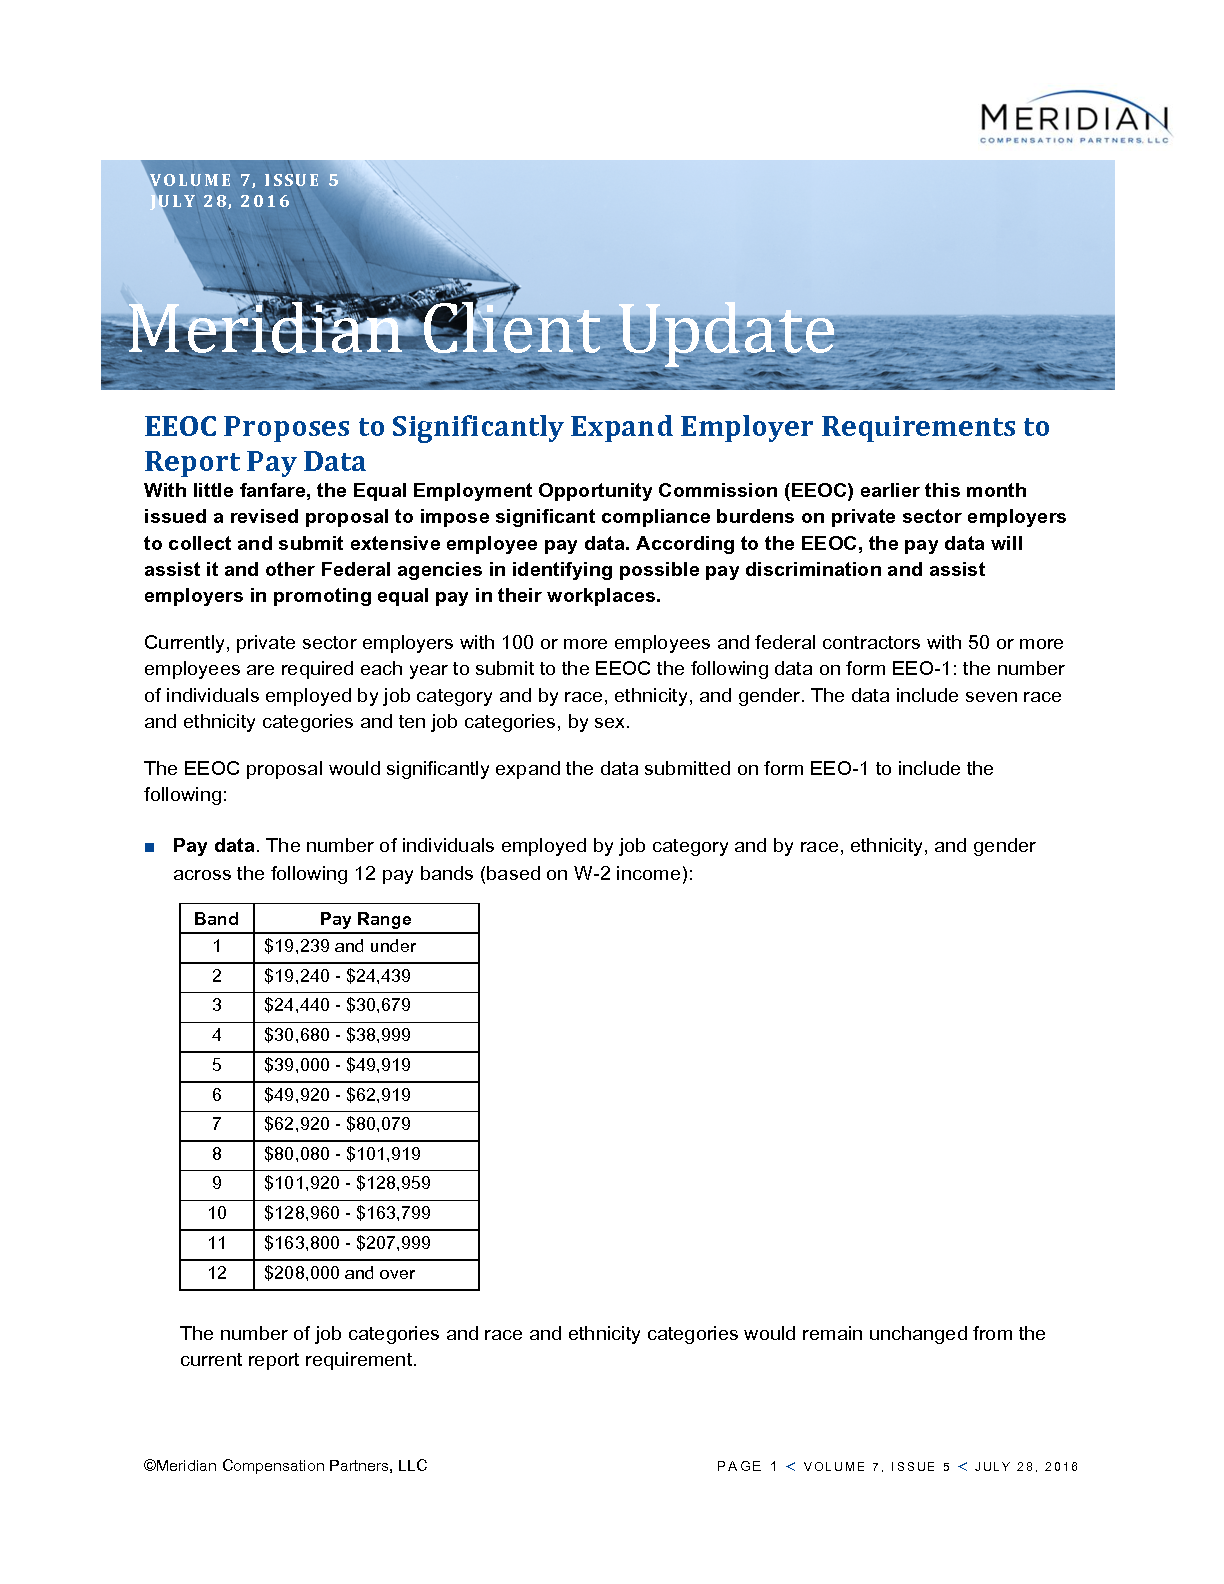 EEOC Proposes to Significantly Expand Employer Requirements